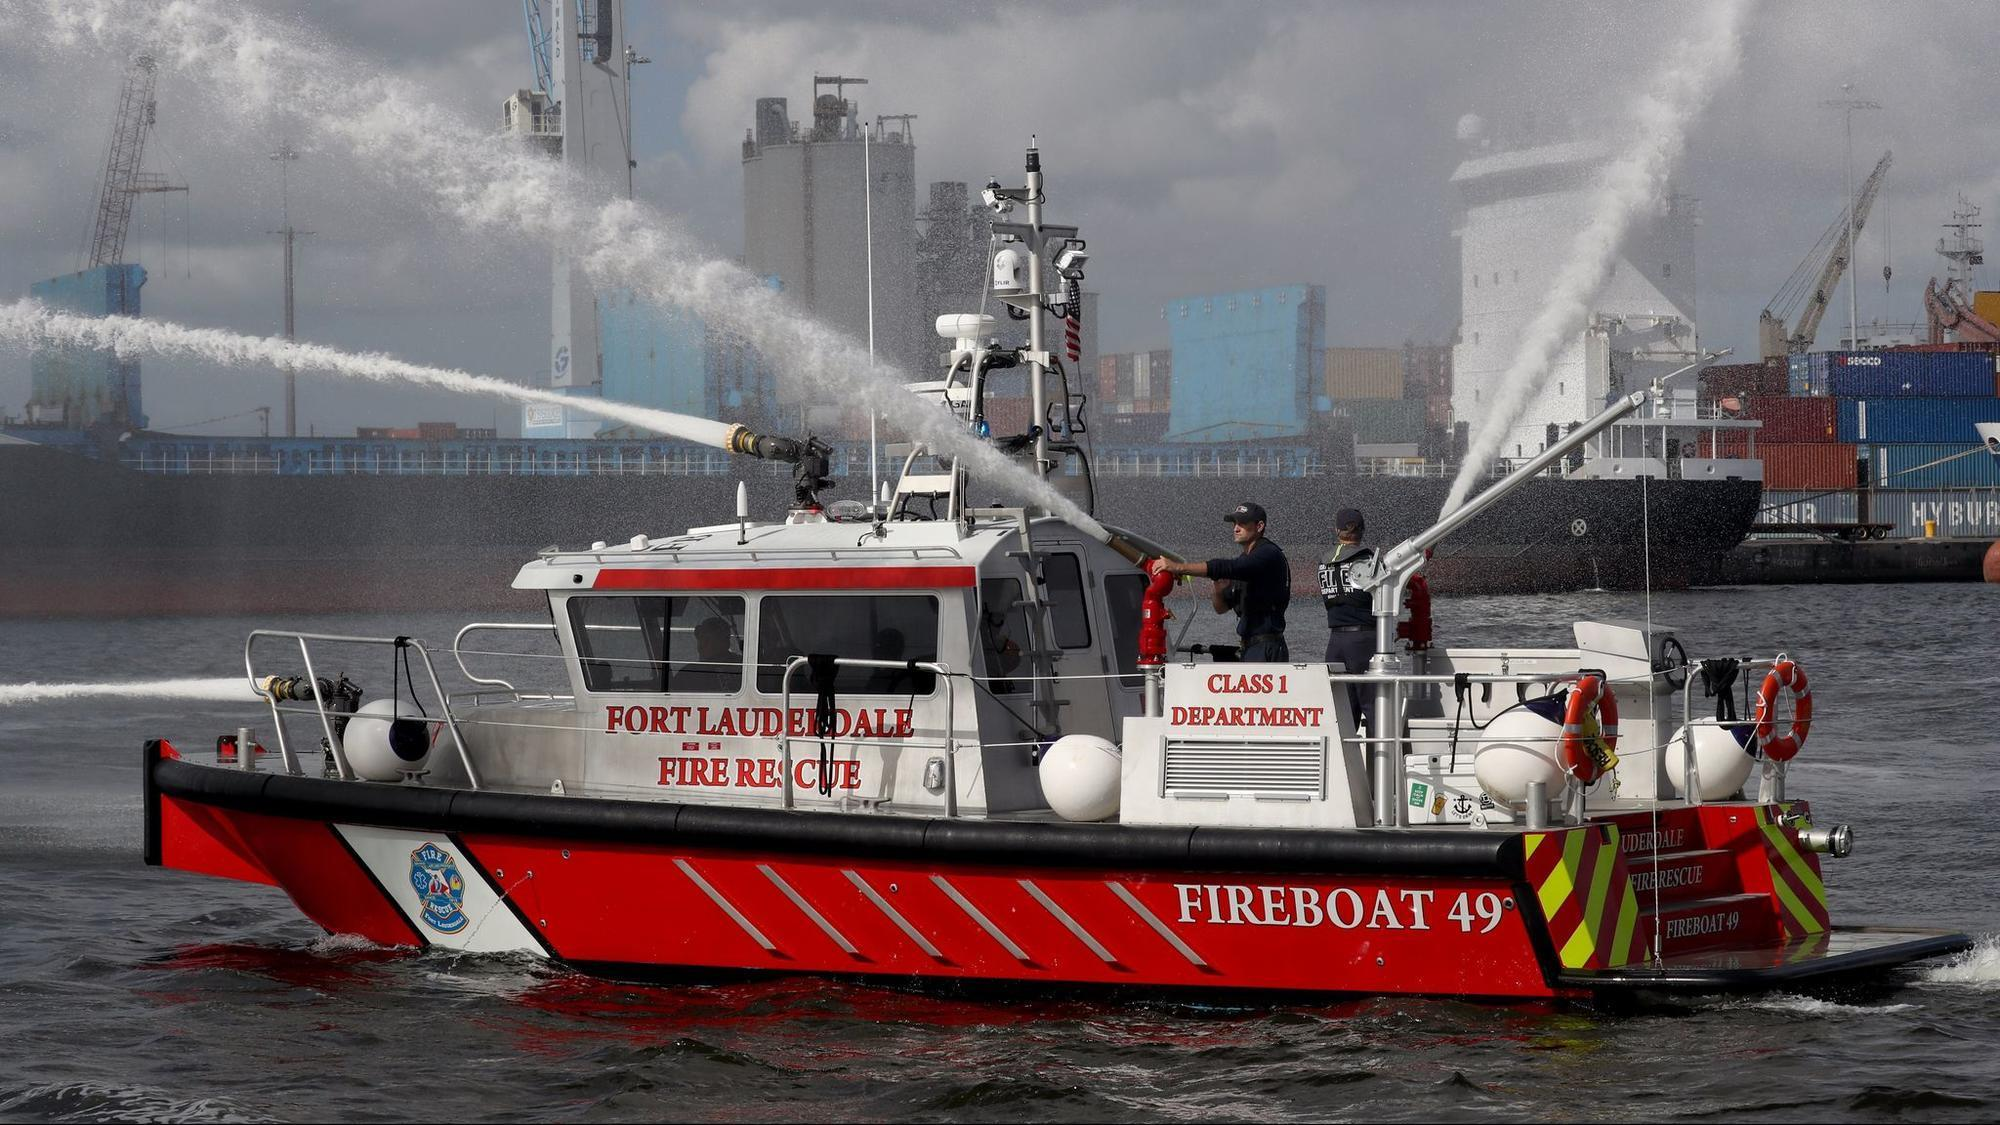 Fire boat photo